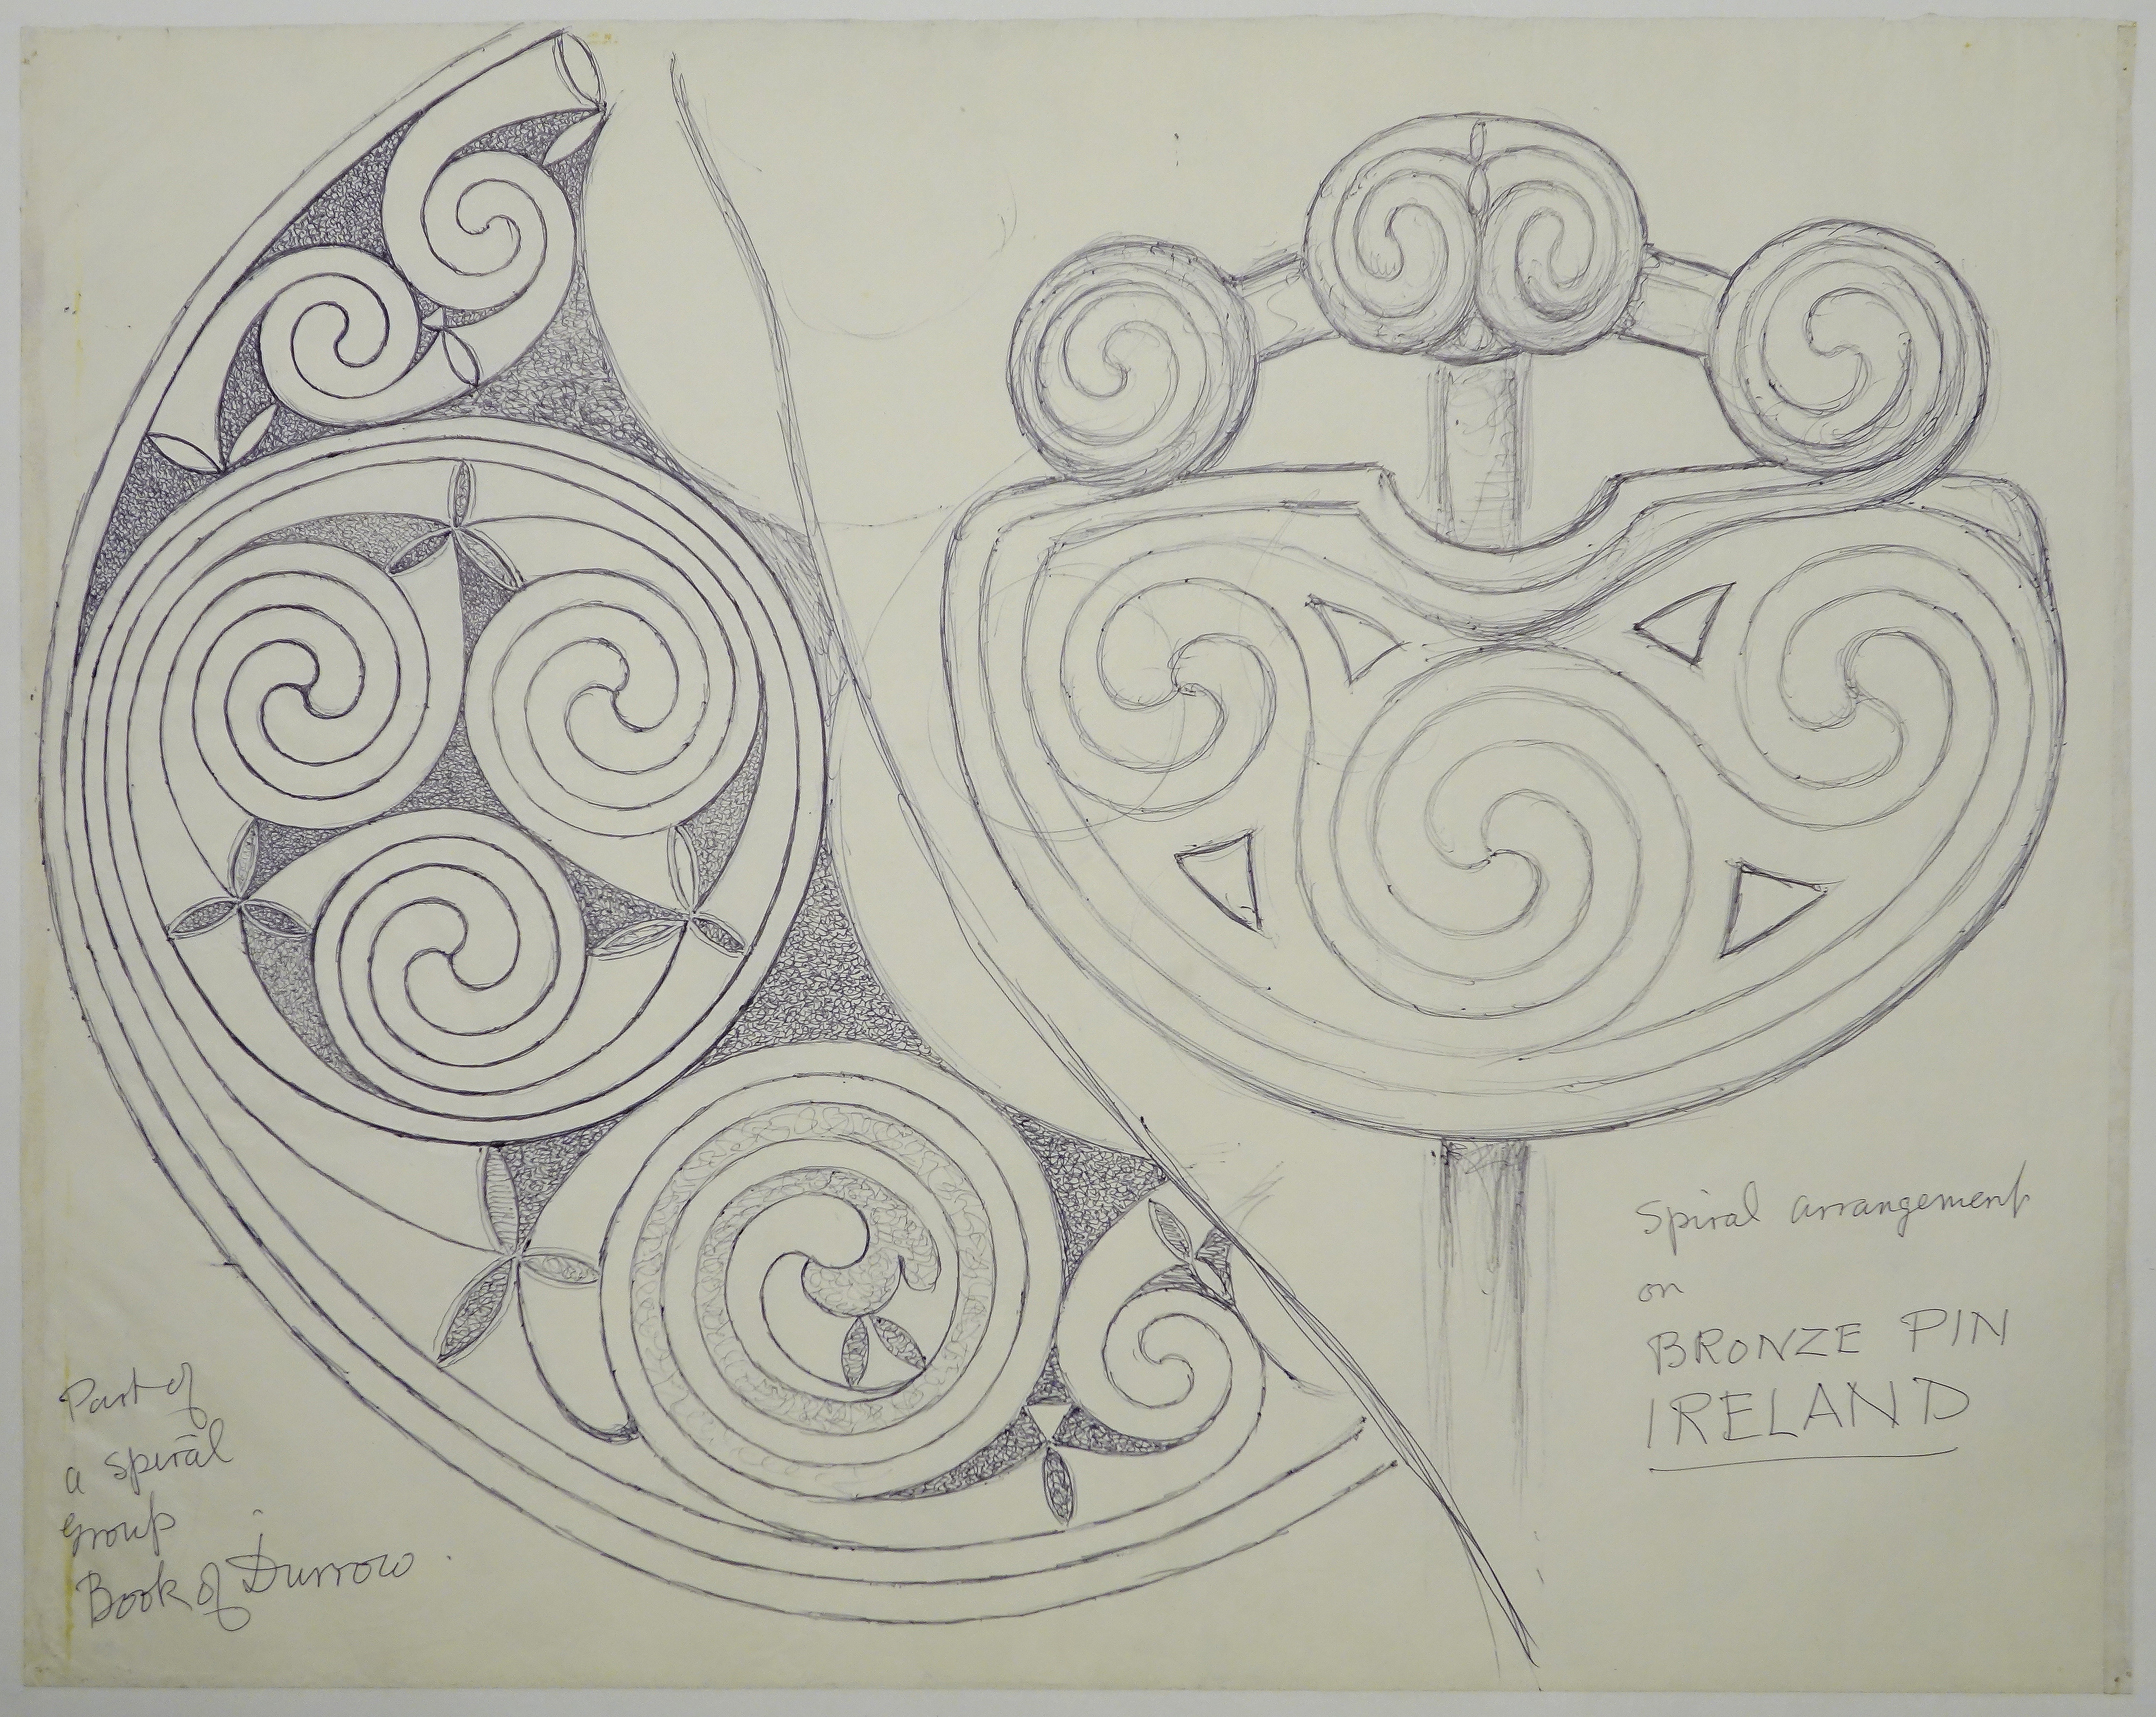 George Bain Drawing - Part of a Spiral Group from Book of Durrow ...